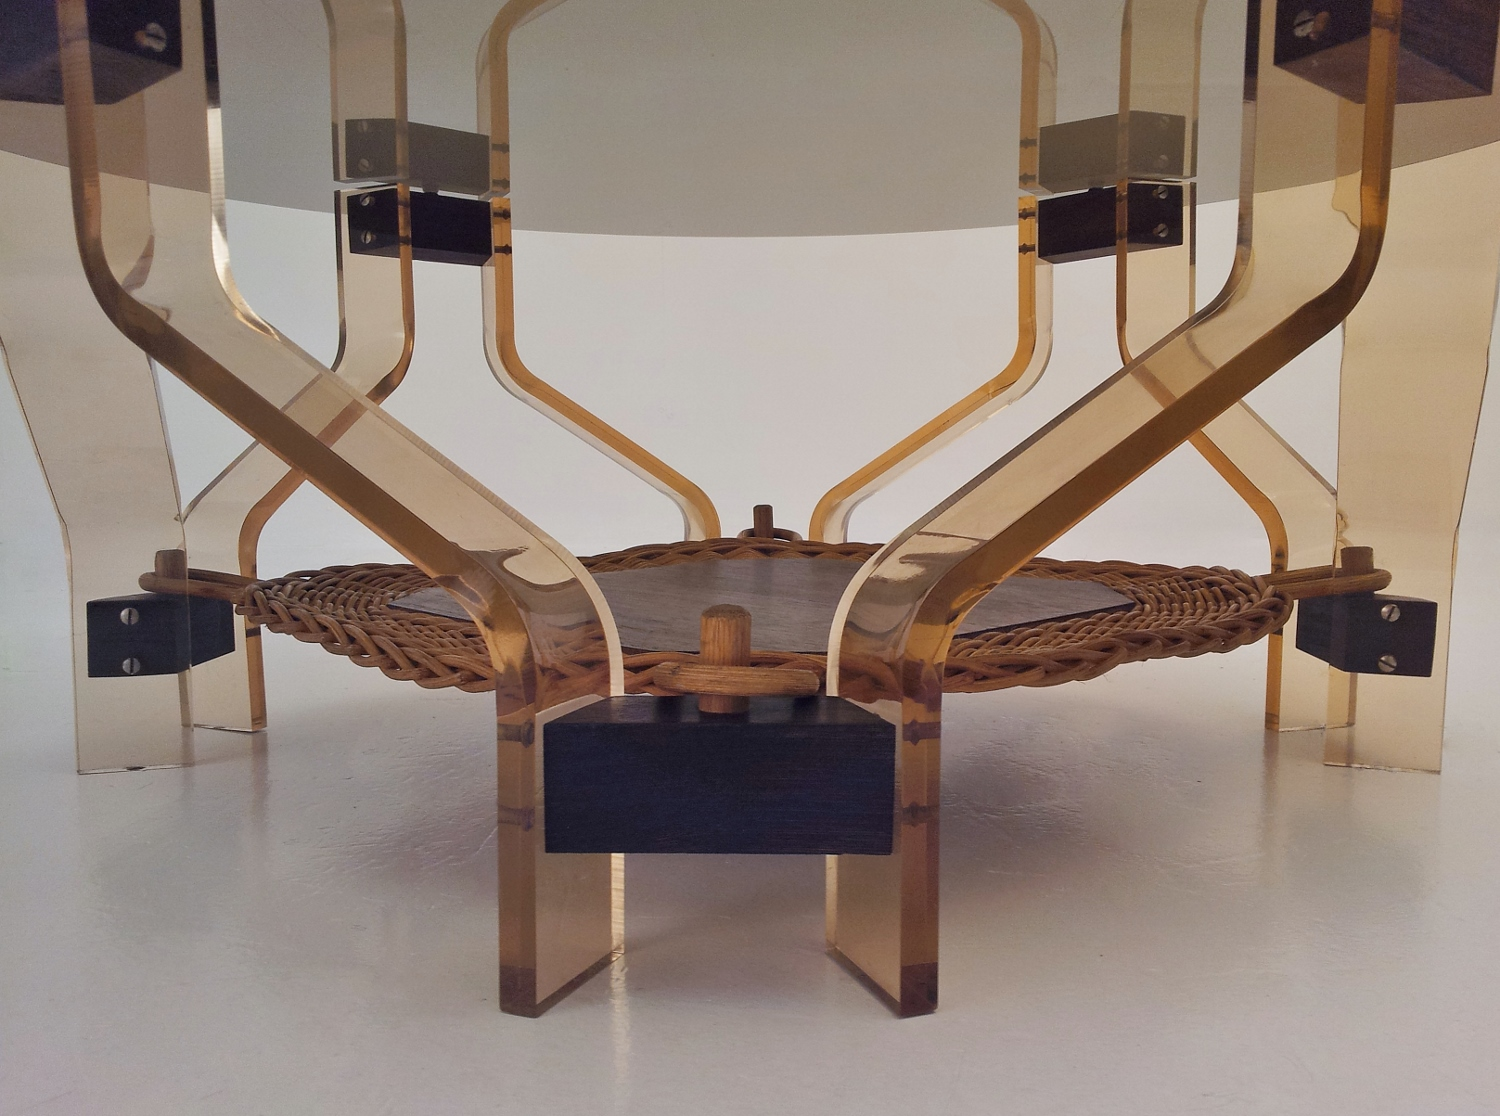 Lucite, wood & glass vintage sculptural coffee table with rattan shelf, 1970`s ca, Danish in